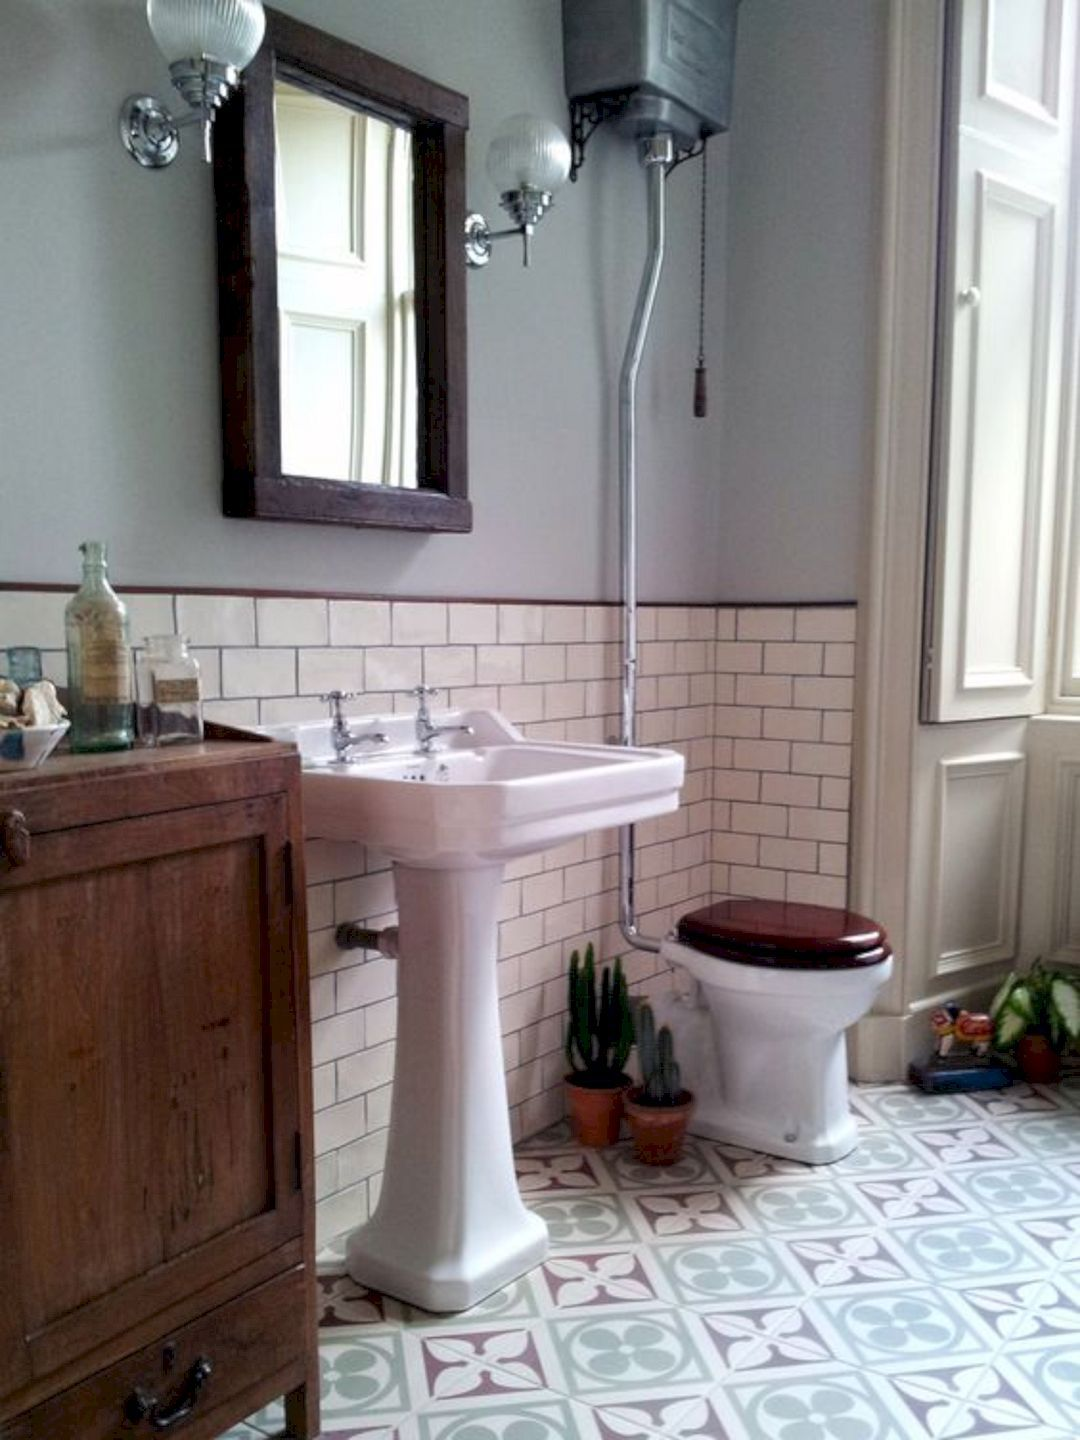 15 Stunning Bathroom Ideas Featuring Victorian Design ...